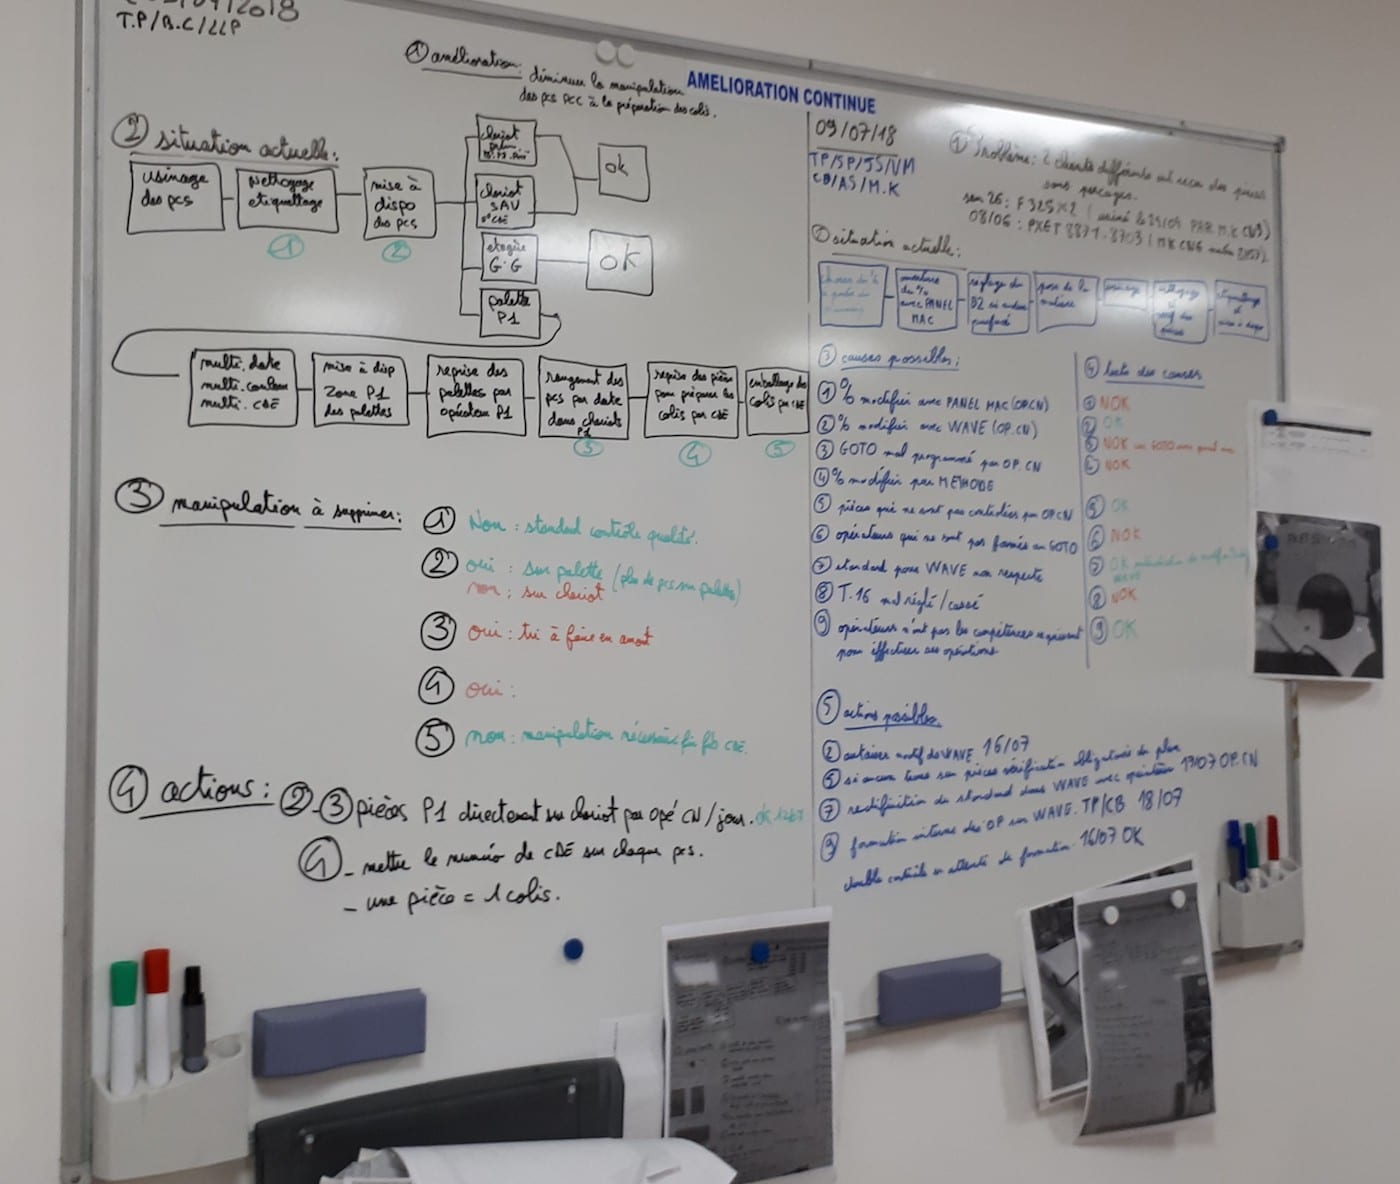 A lean continuous improvement board at Proludic